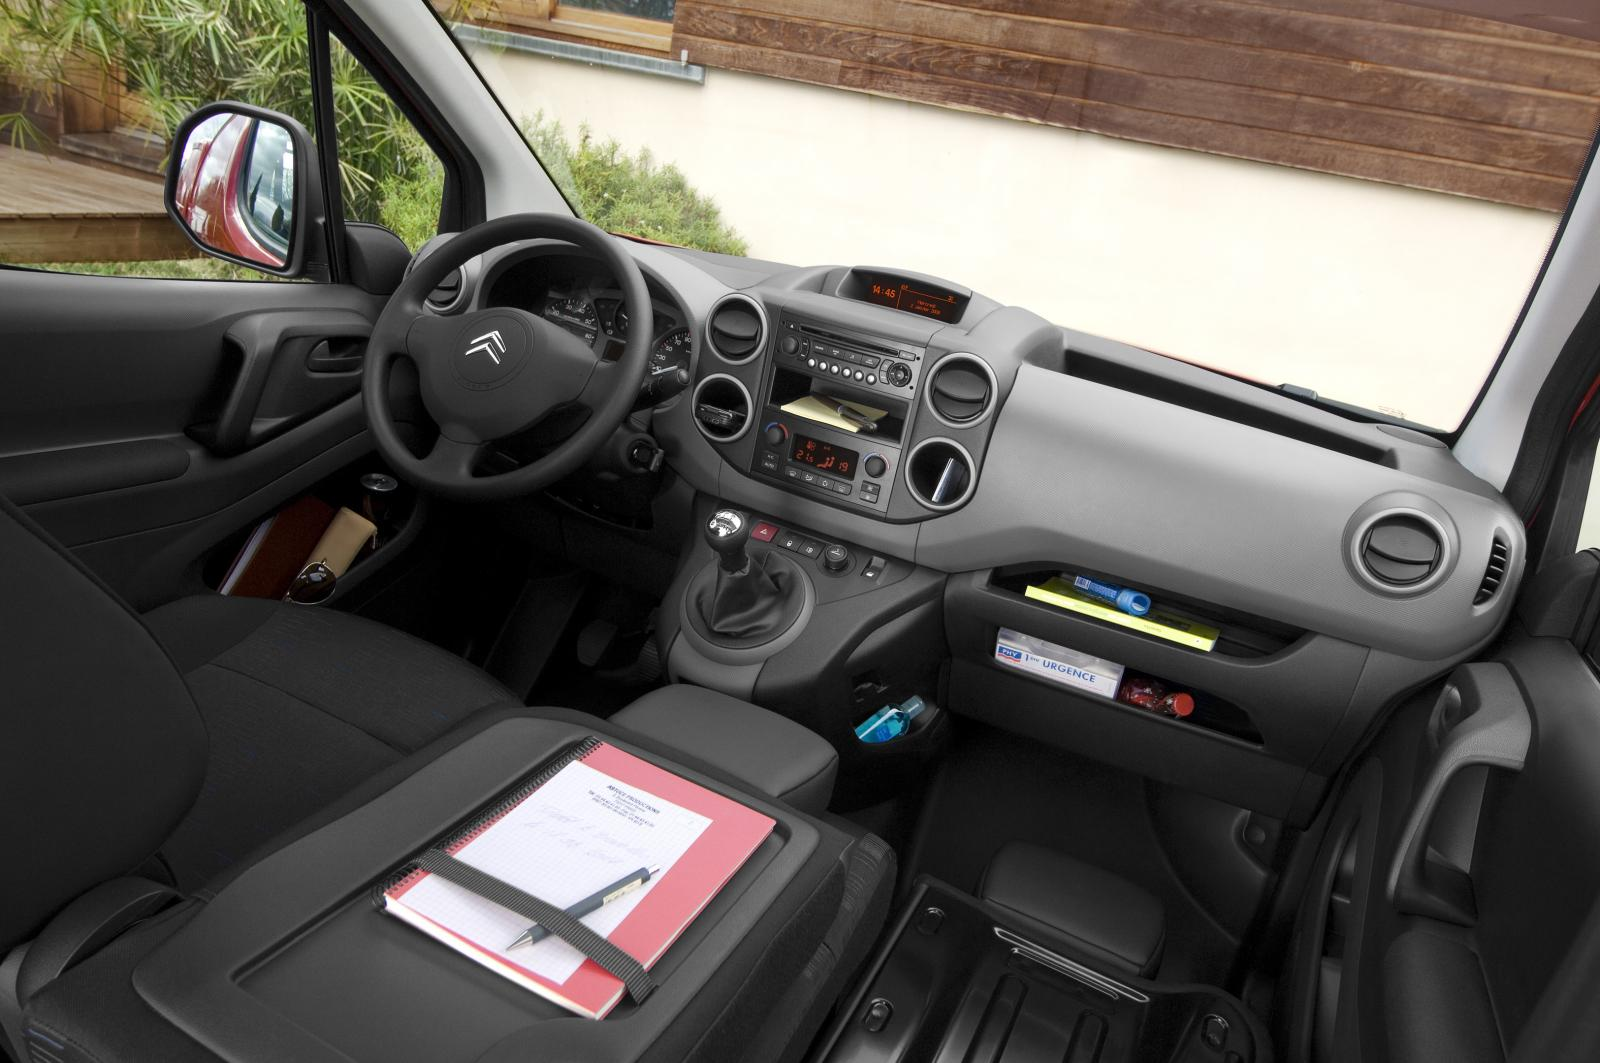 Inside Berlingo 2008